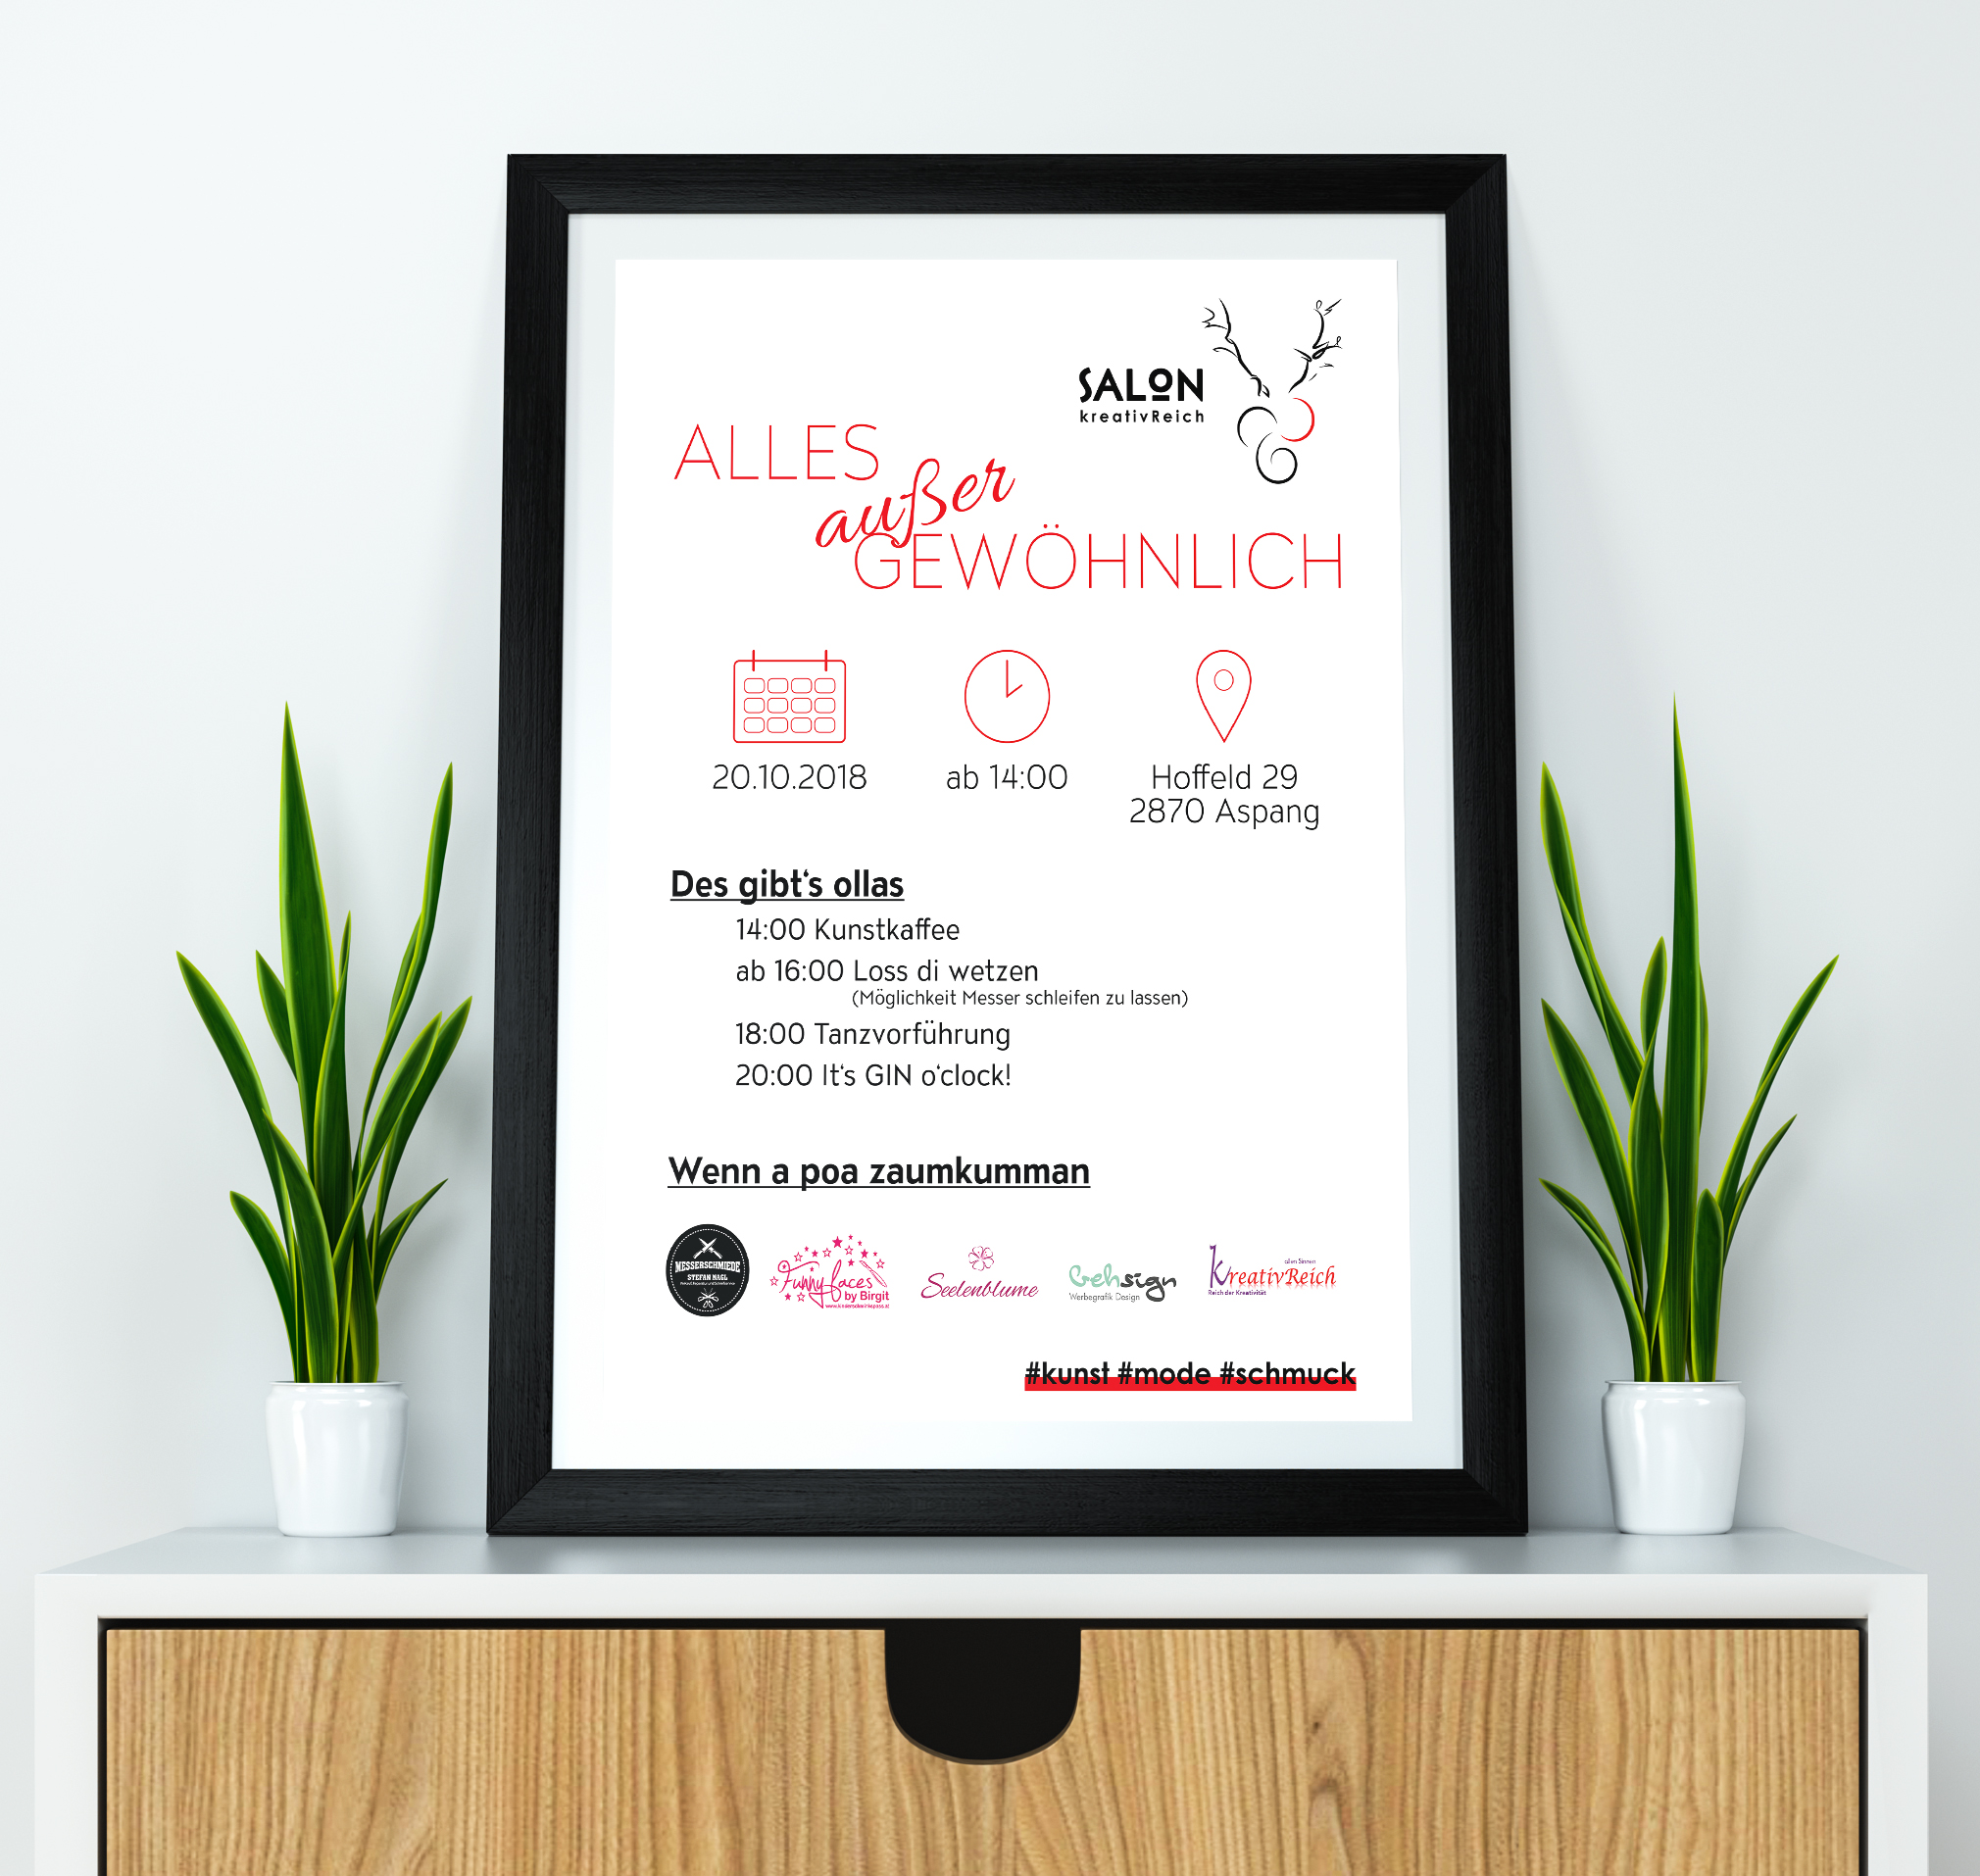 Salon kreativReich-Plakat